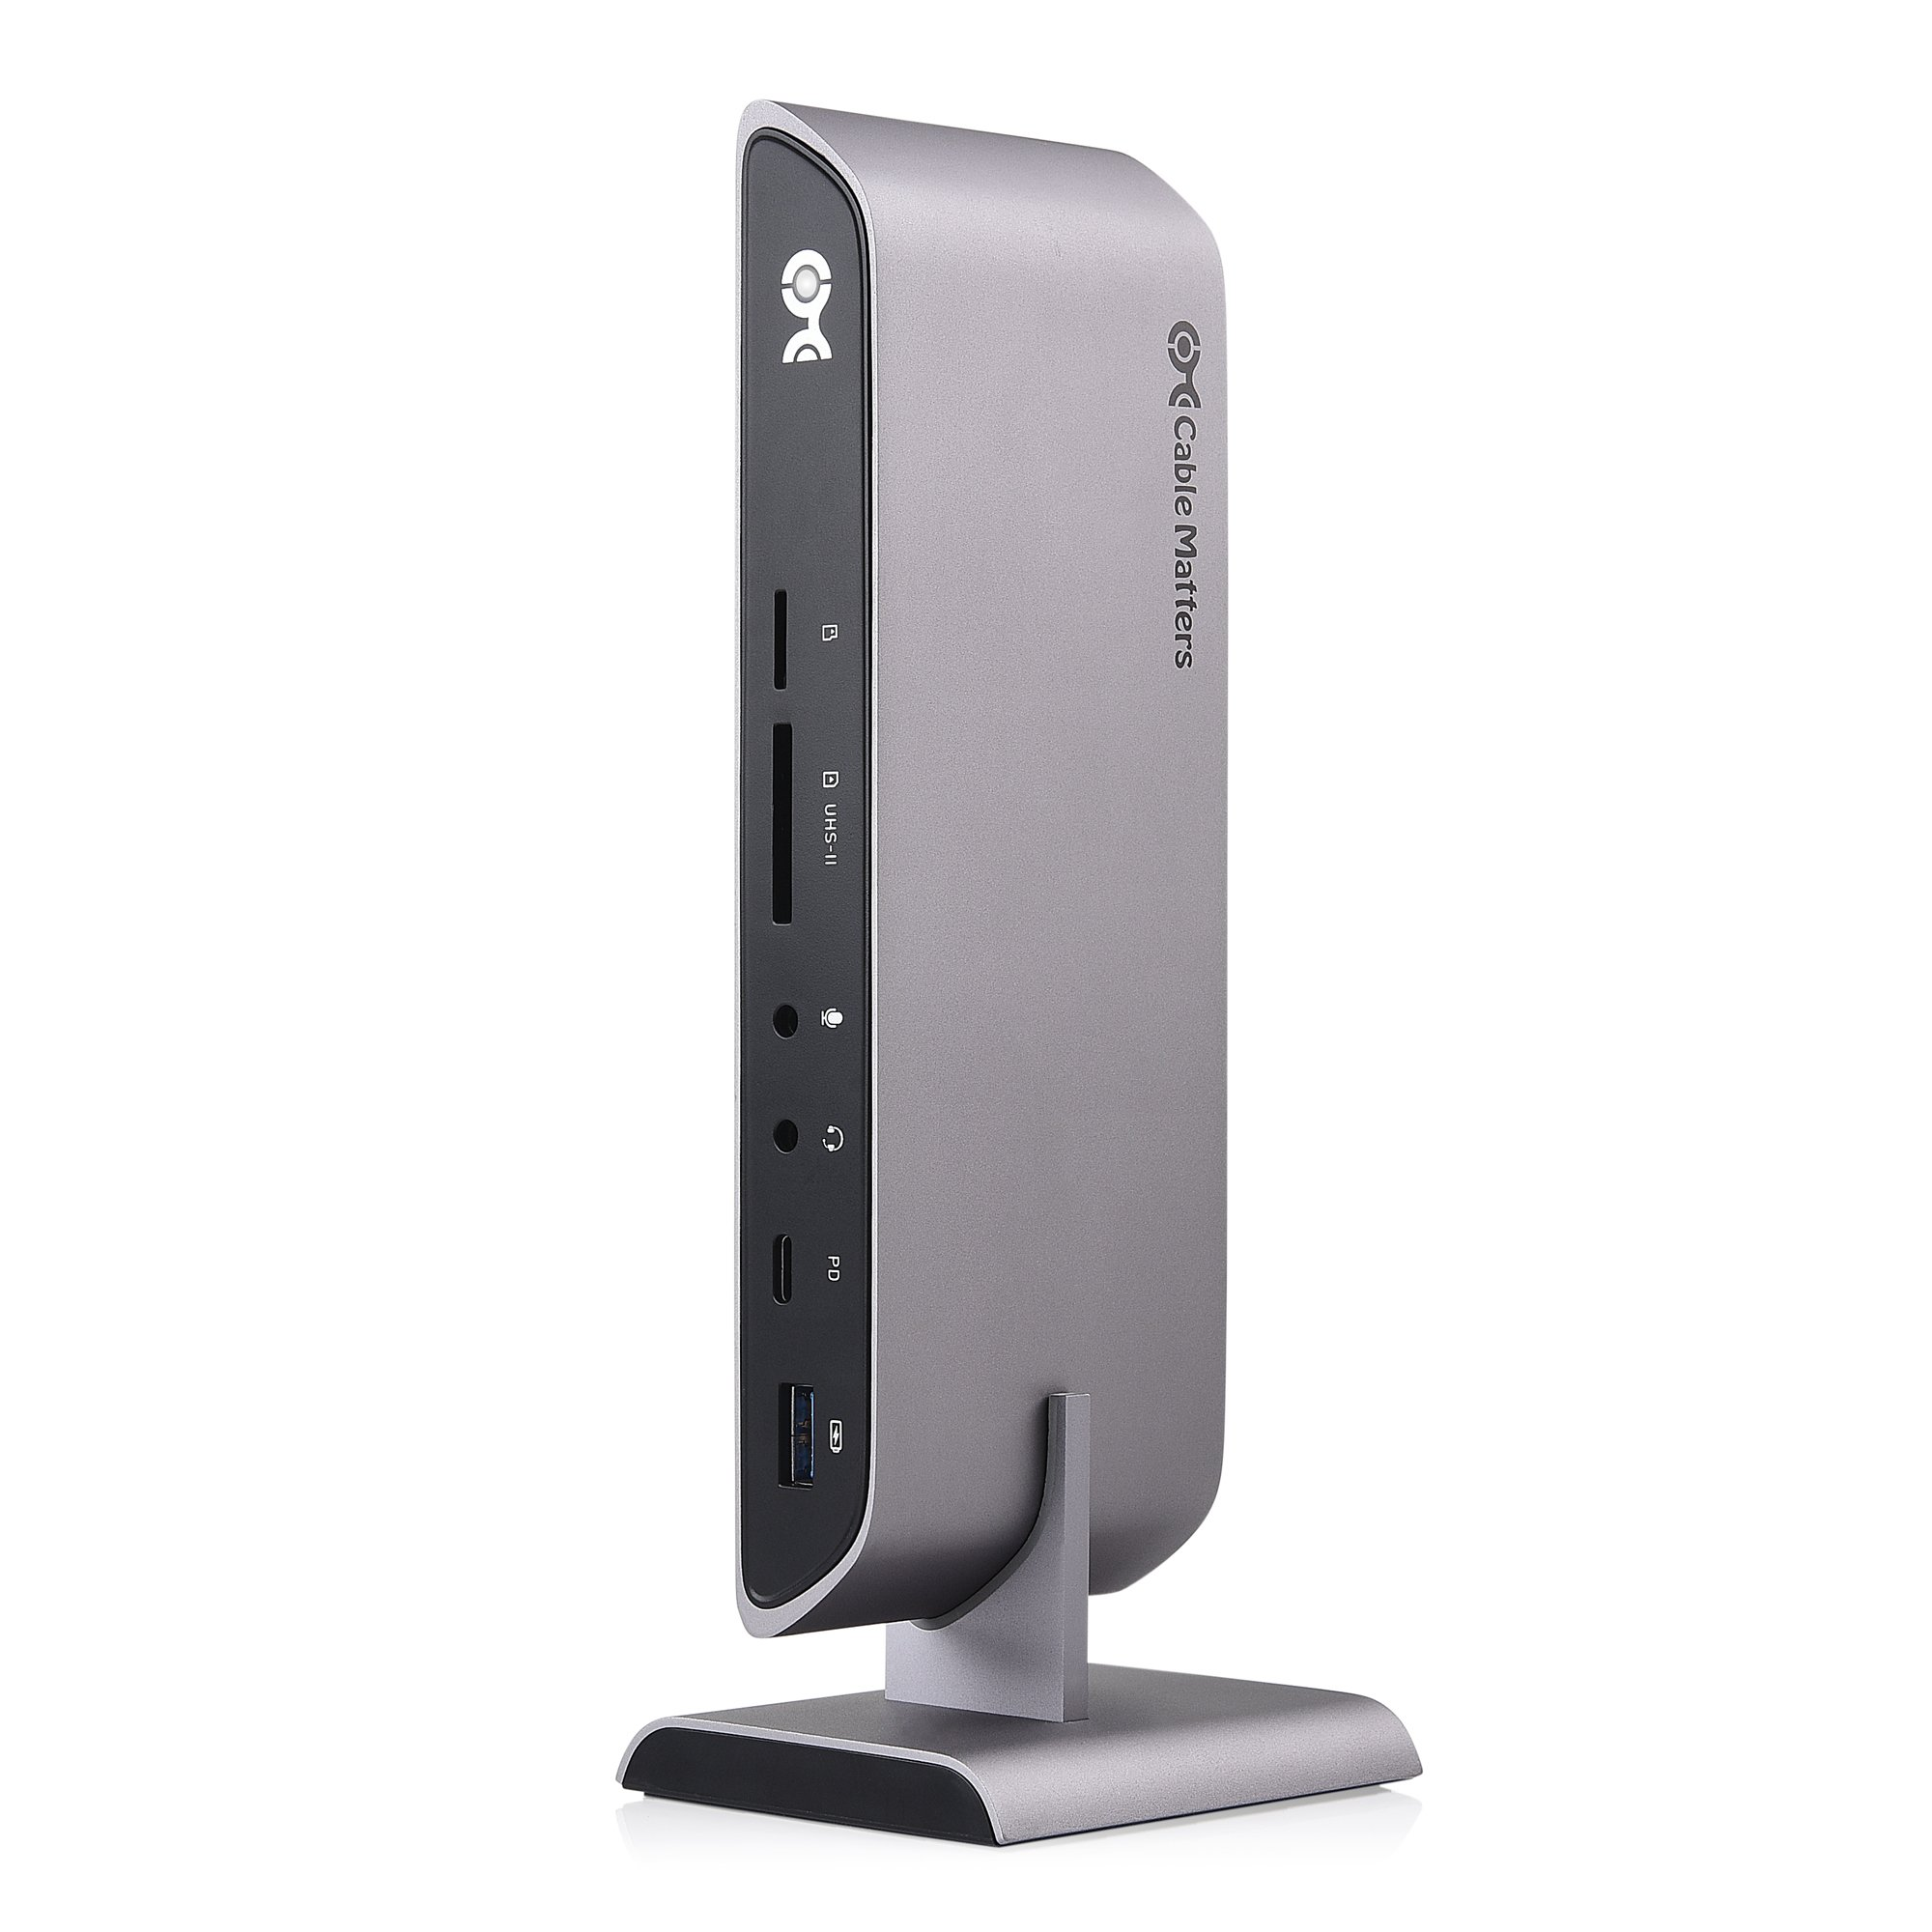 Cable Matters 10Gbps USB C Dock (USB C Docking Station) with Dual 4K DisplayPort and 80W Charging for Windows - USB-C & Thunderbolt 3 Port Compatible - Supports One External Display with MacBook Pro